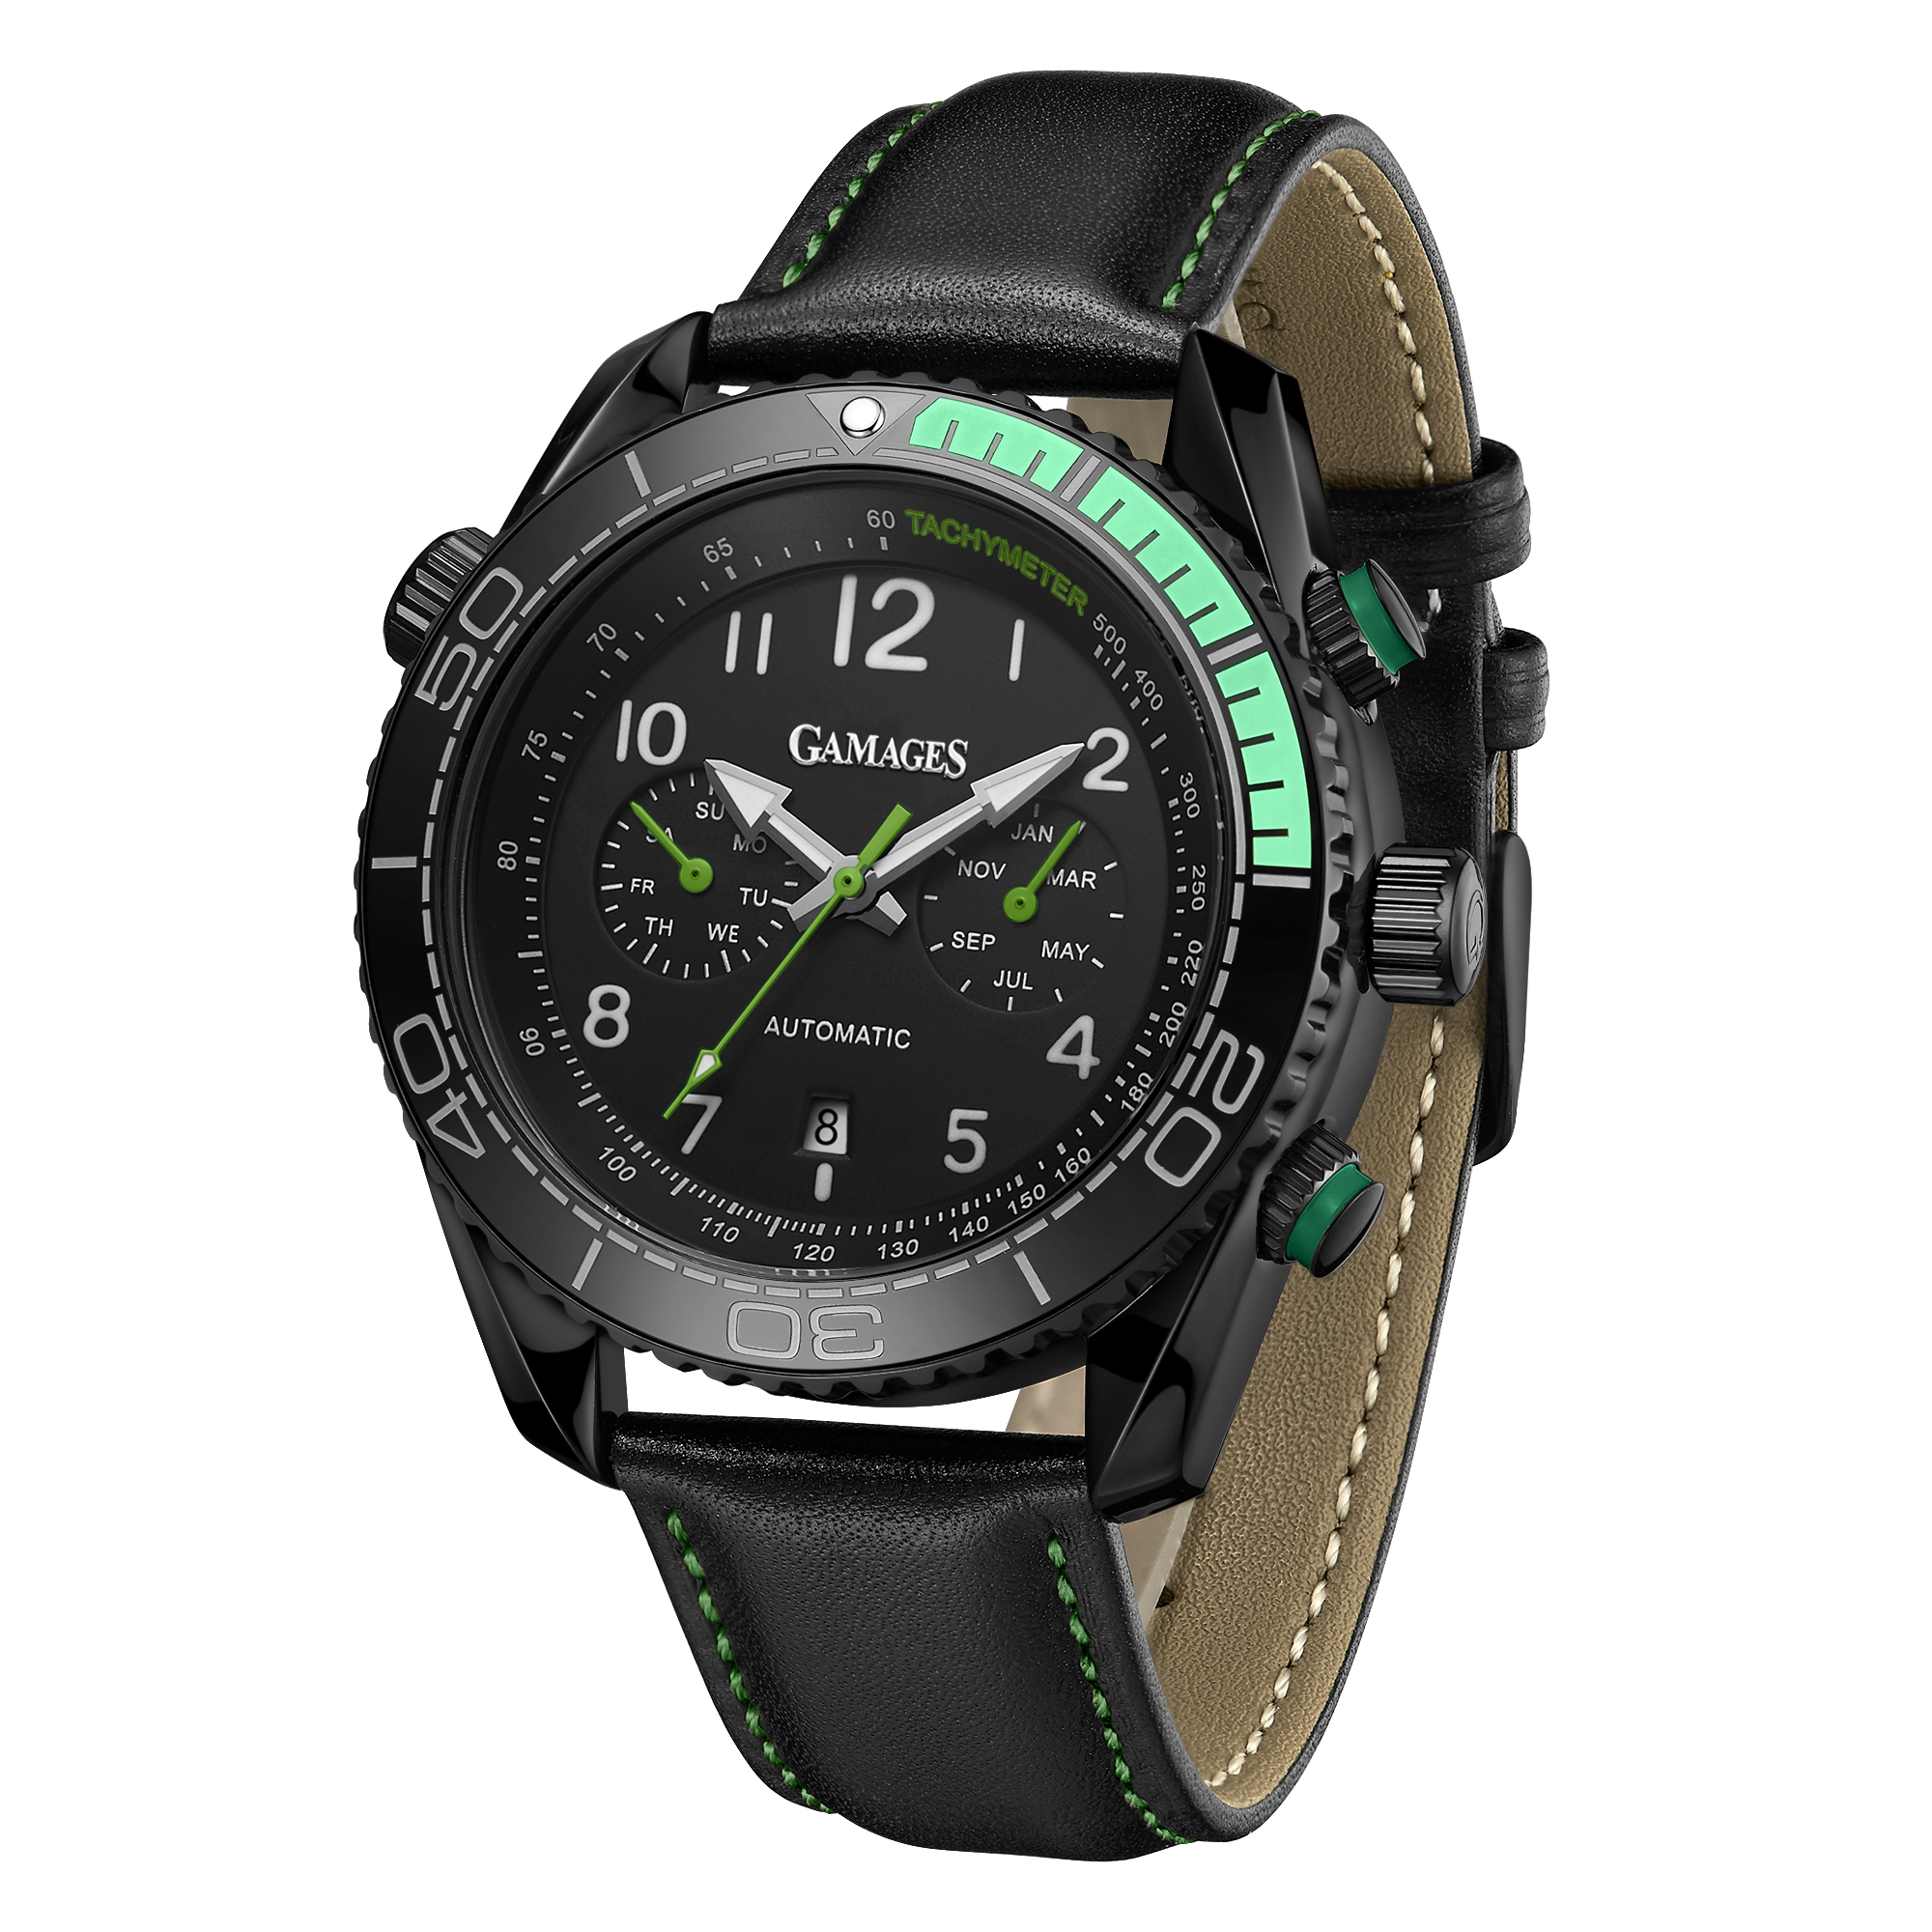 Limited Edition Hand Assembled Gamages Supreme Automatic Green – 5 Year Warranty & Free Delivery - Image 5 of 6